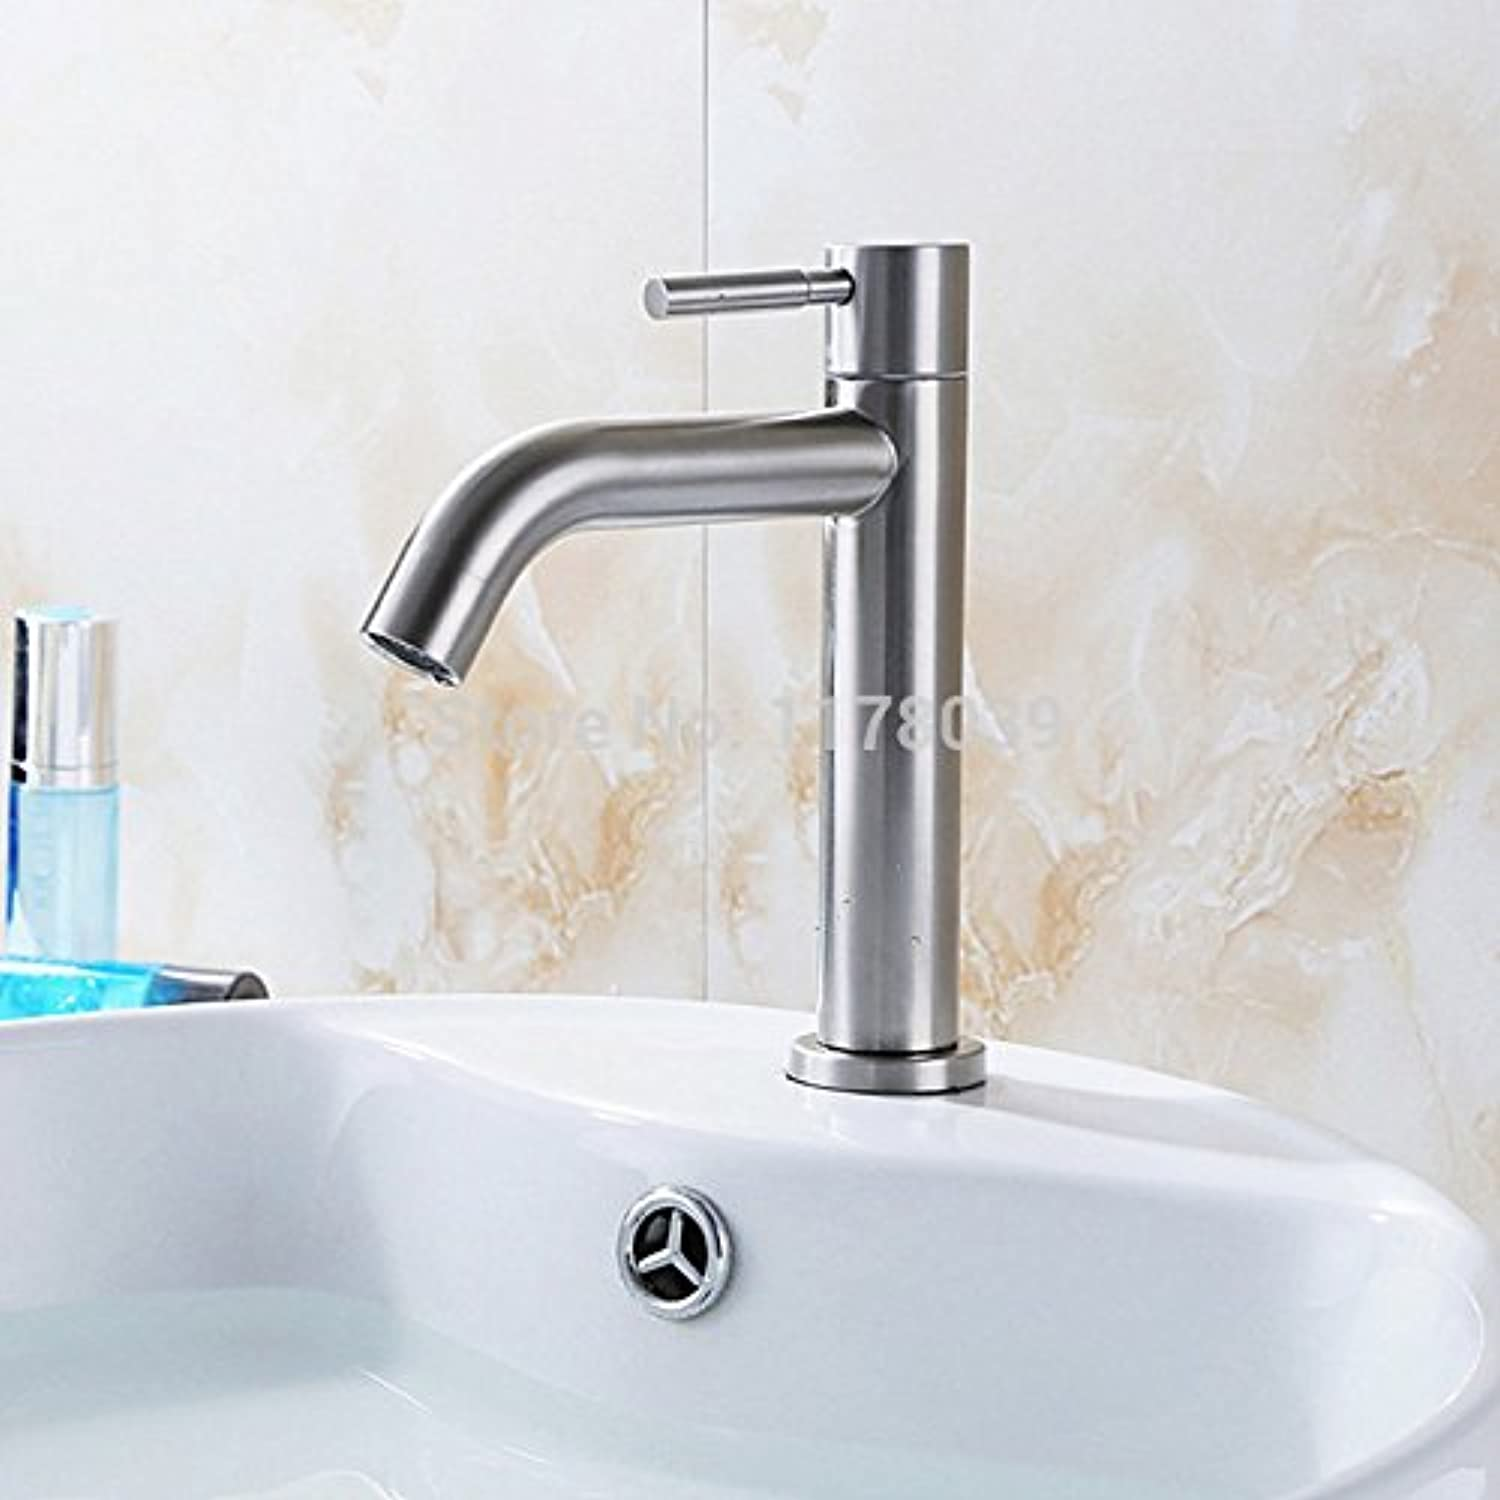 U-Enjoy 304 Stainless Steel Top Quality Single Cold Faucet Bathroom Single Cold Tap Contemporary Single Handle Bathroom Faucet (Free Shipping)